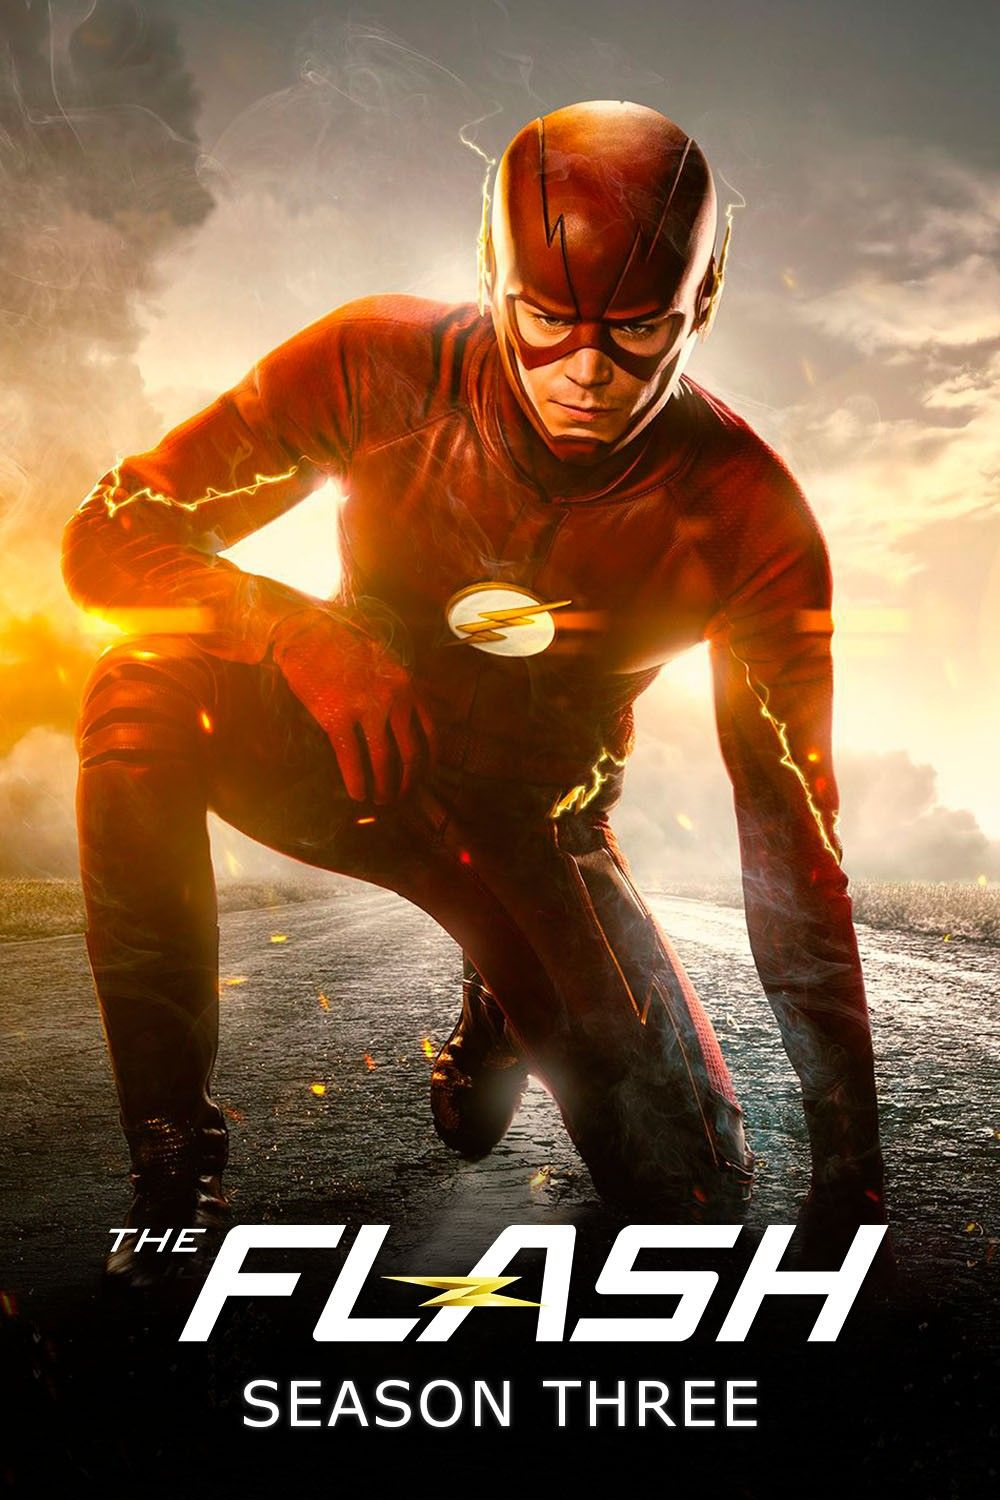 Pin by Playstation 4 gamer on dc comics The flash season